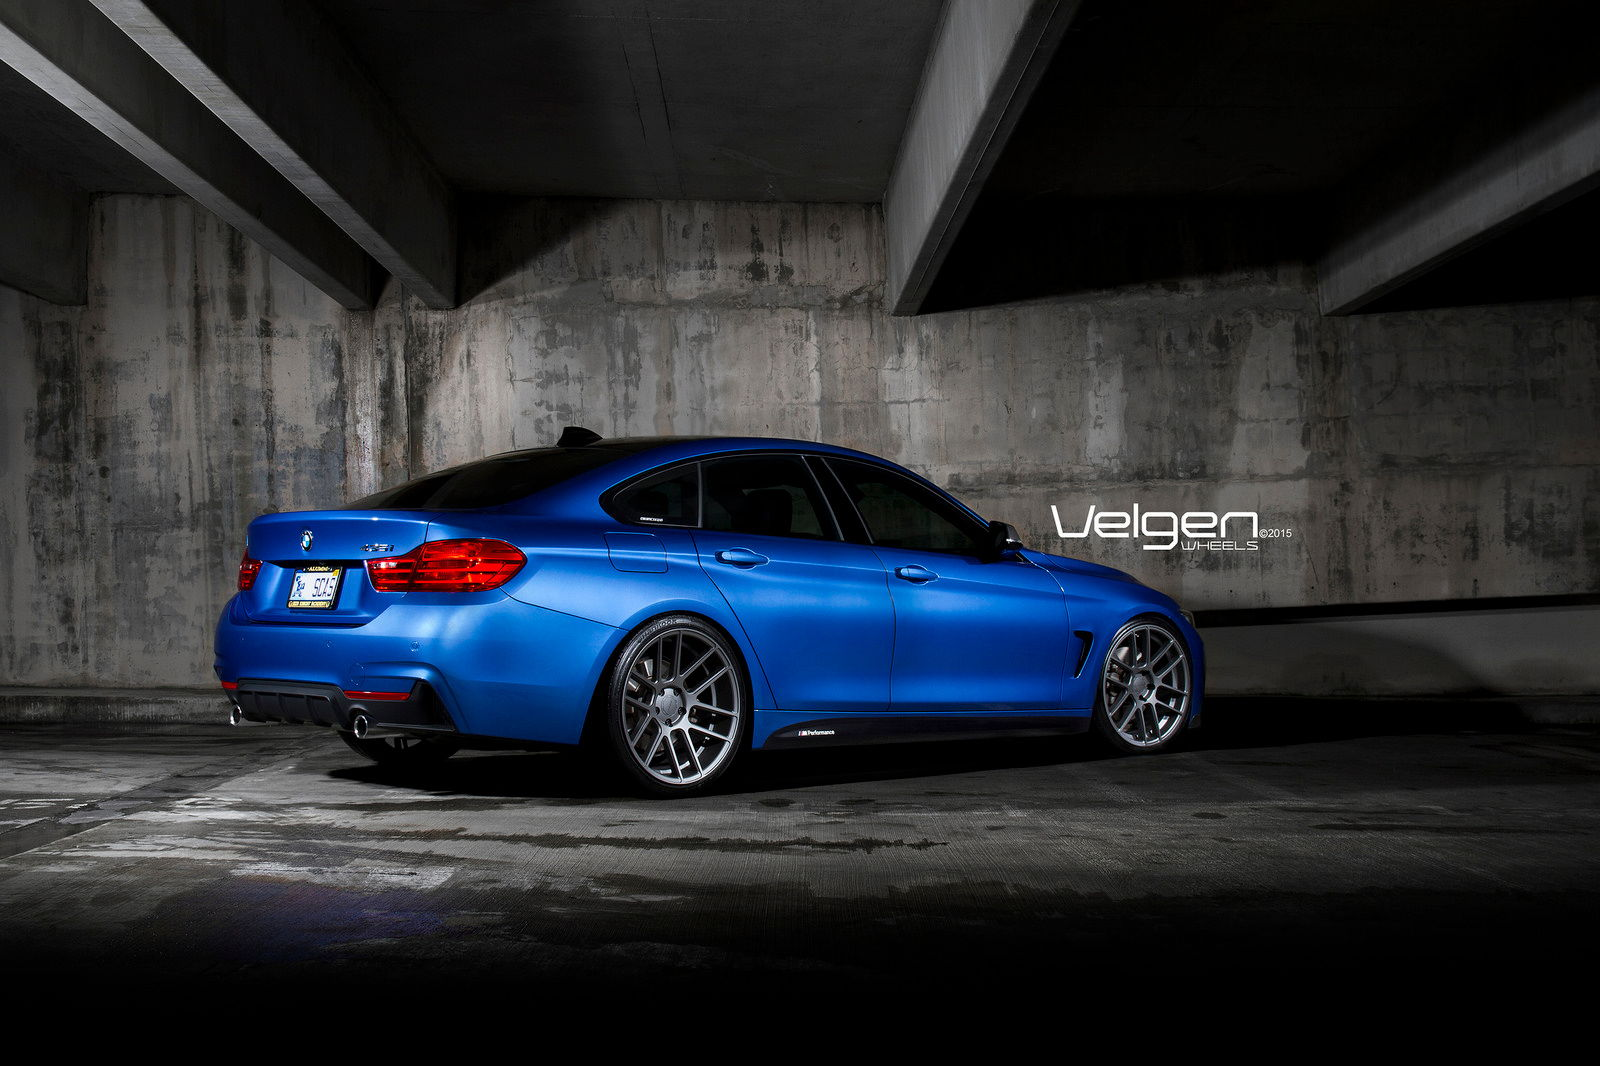 2015 Sti For Sale >> BMW 435i Grand Coupe on Velgen Wheels - 6SpeedOnline - Porsche Forum and Luxury Car Resource